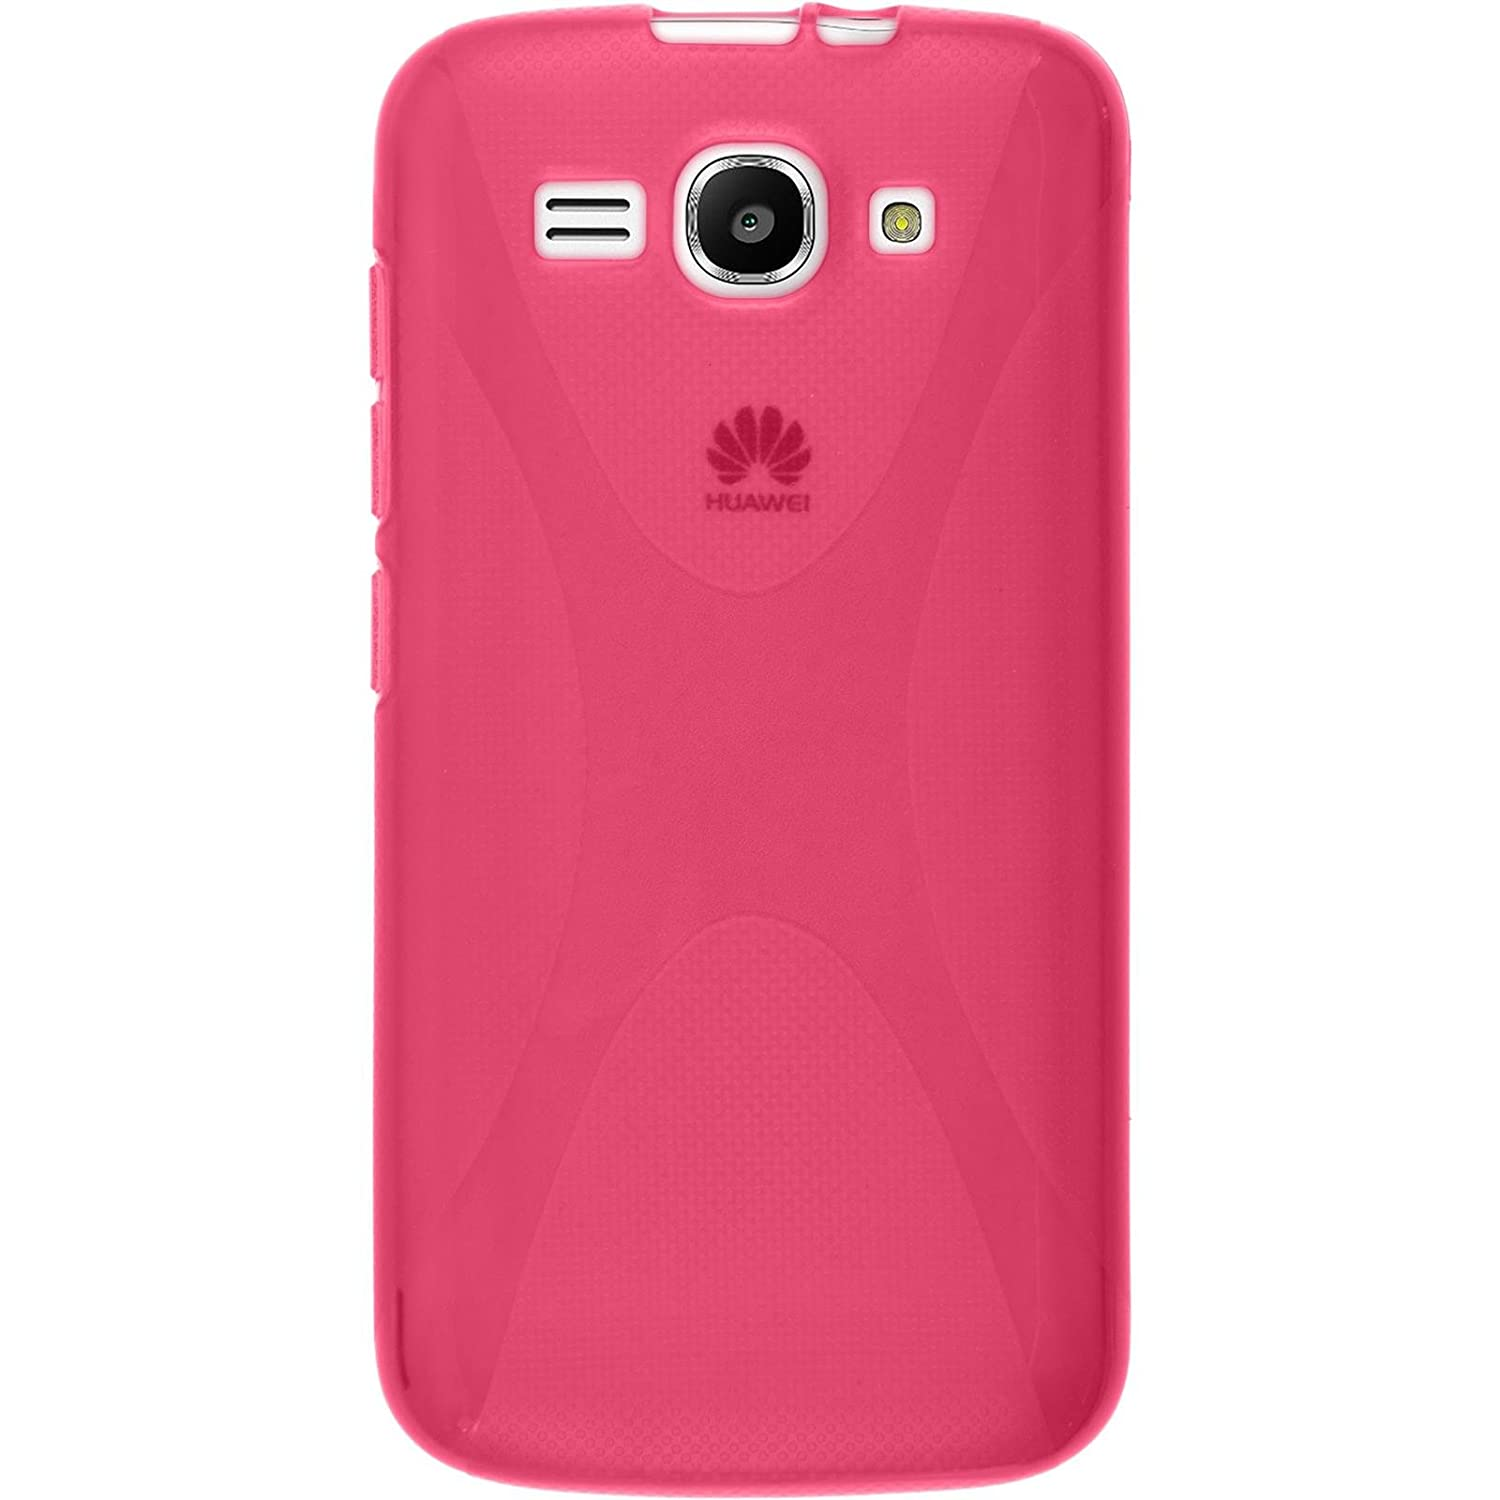 Silicone Case for Huawei Ascend Y520 - X-Style hot pink - Cover PhoneNatic  + protective foils